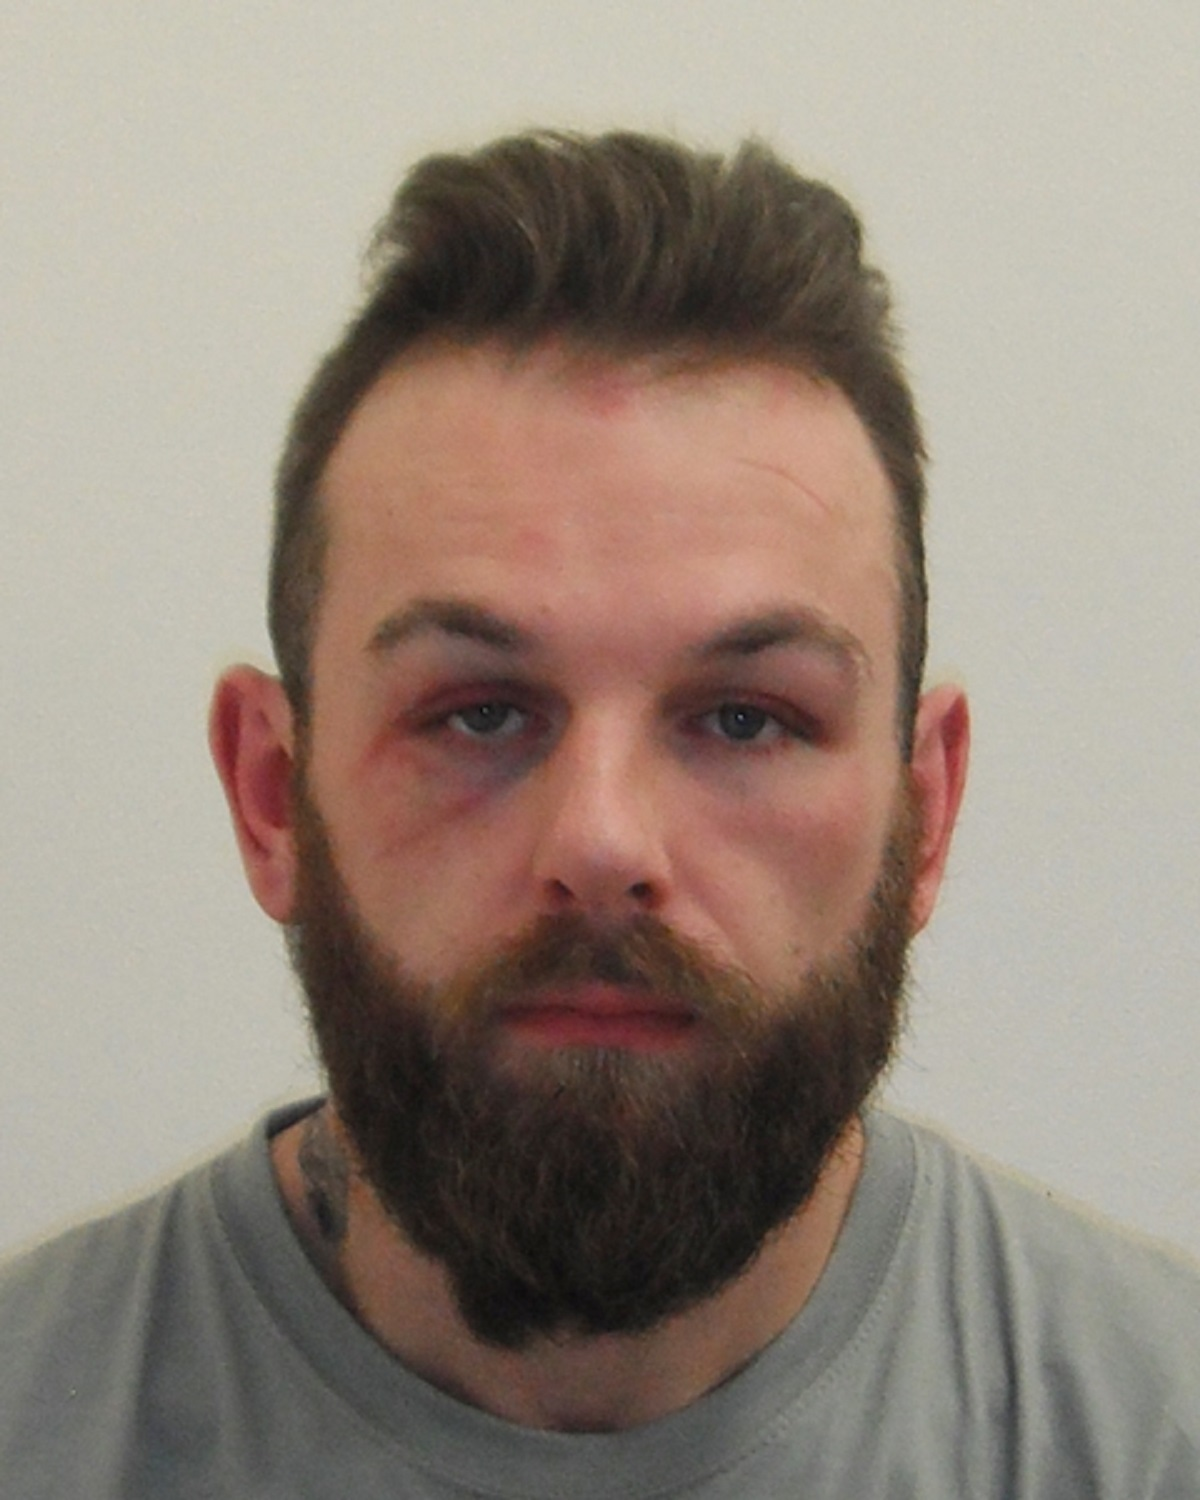 JAILED: Dale Wilson. Photo: West Mercia Police